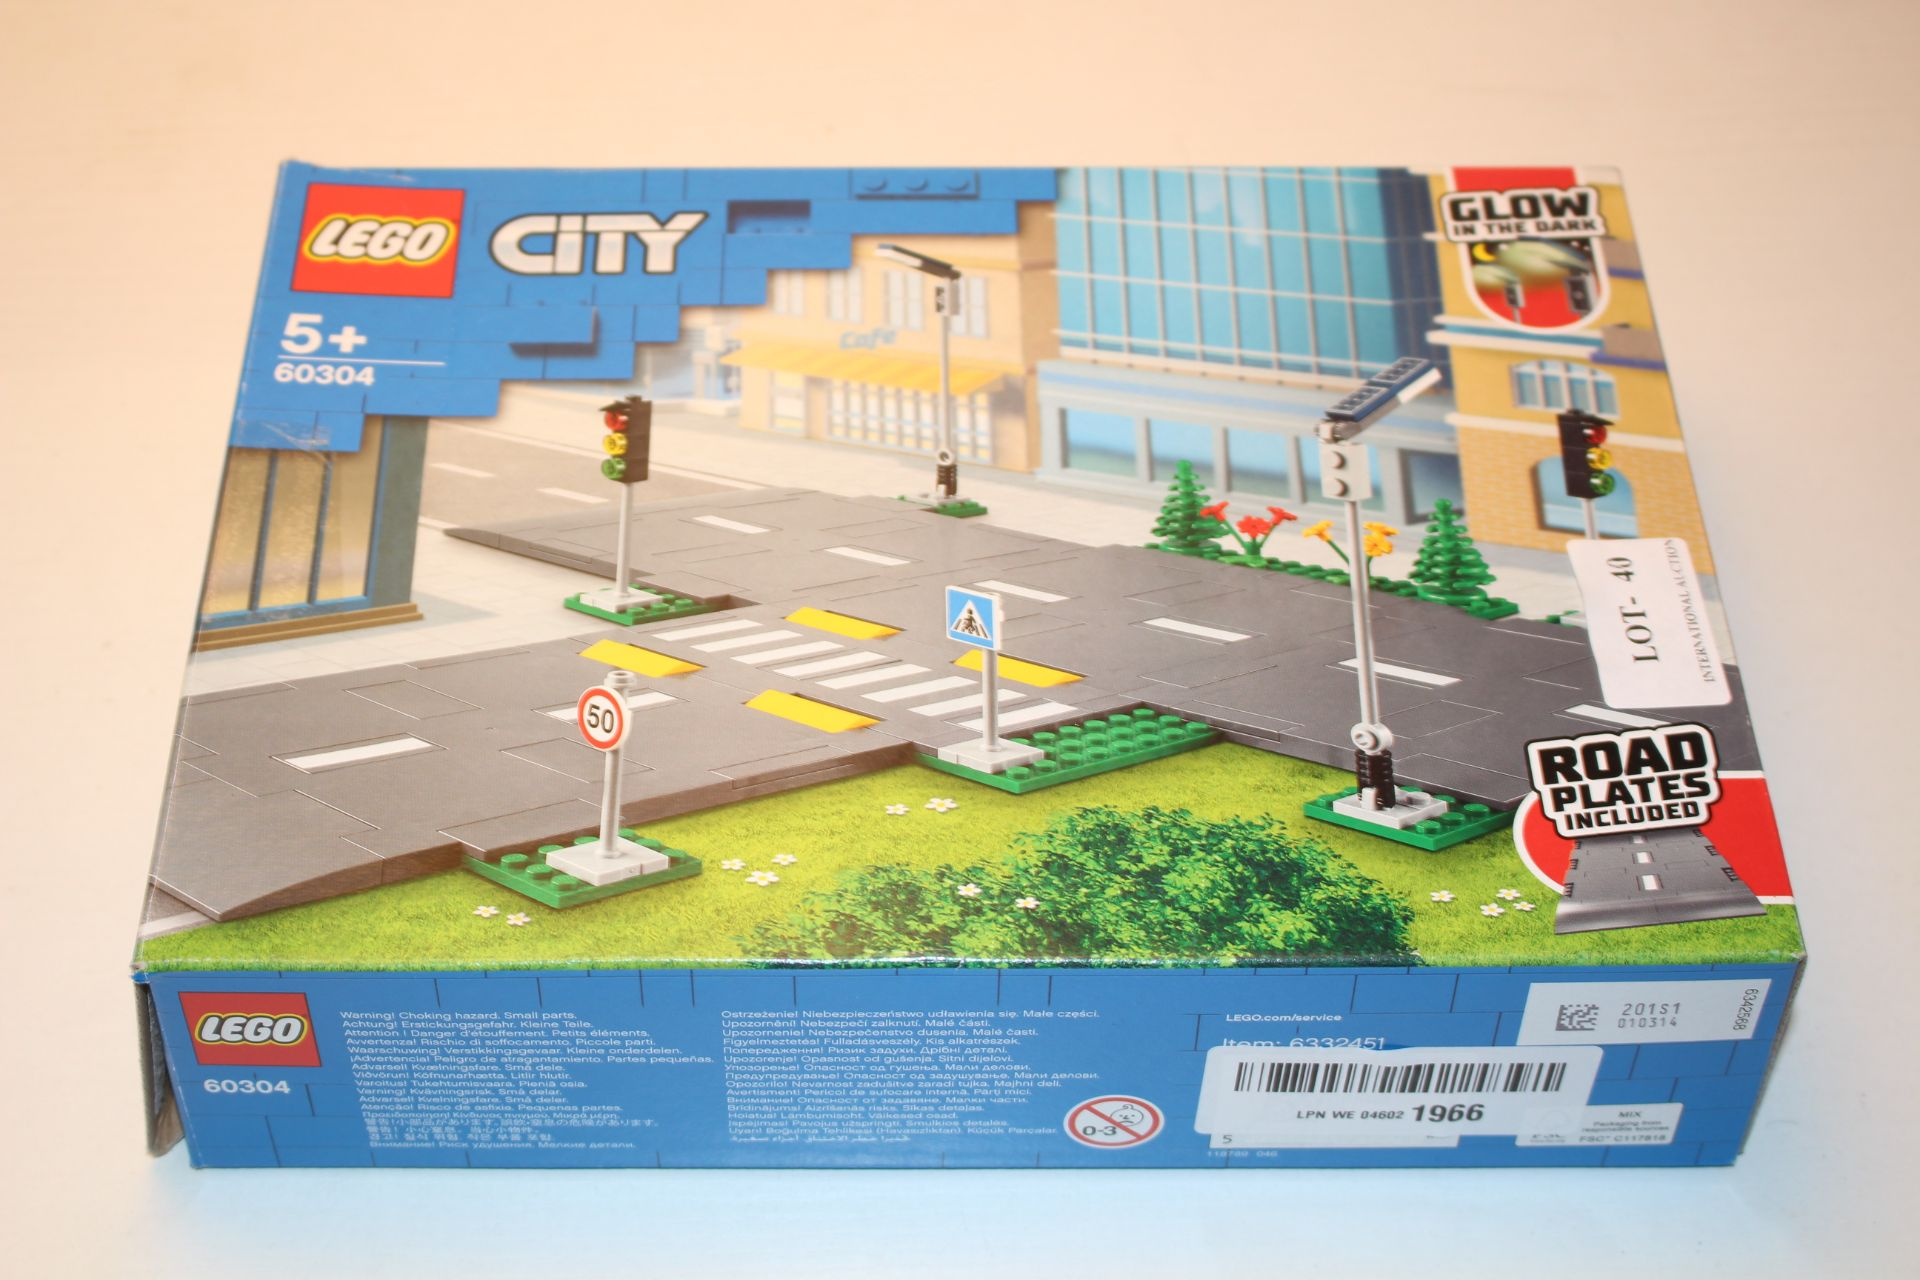 BOXED LEGO CITY ROAD PLATES 60304 RRP £18.00Condition ReportAppraisal Available on Request- All